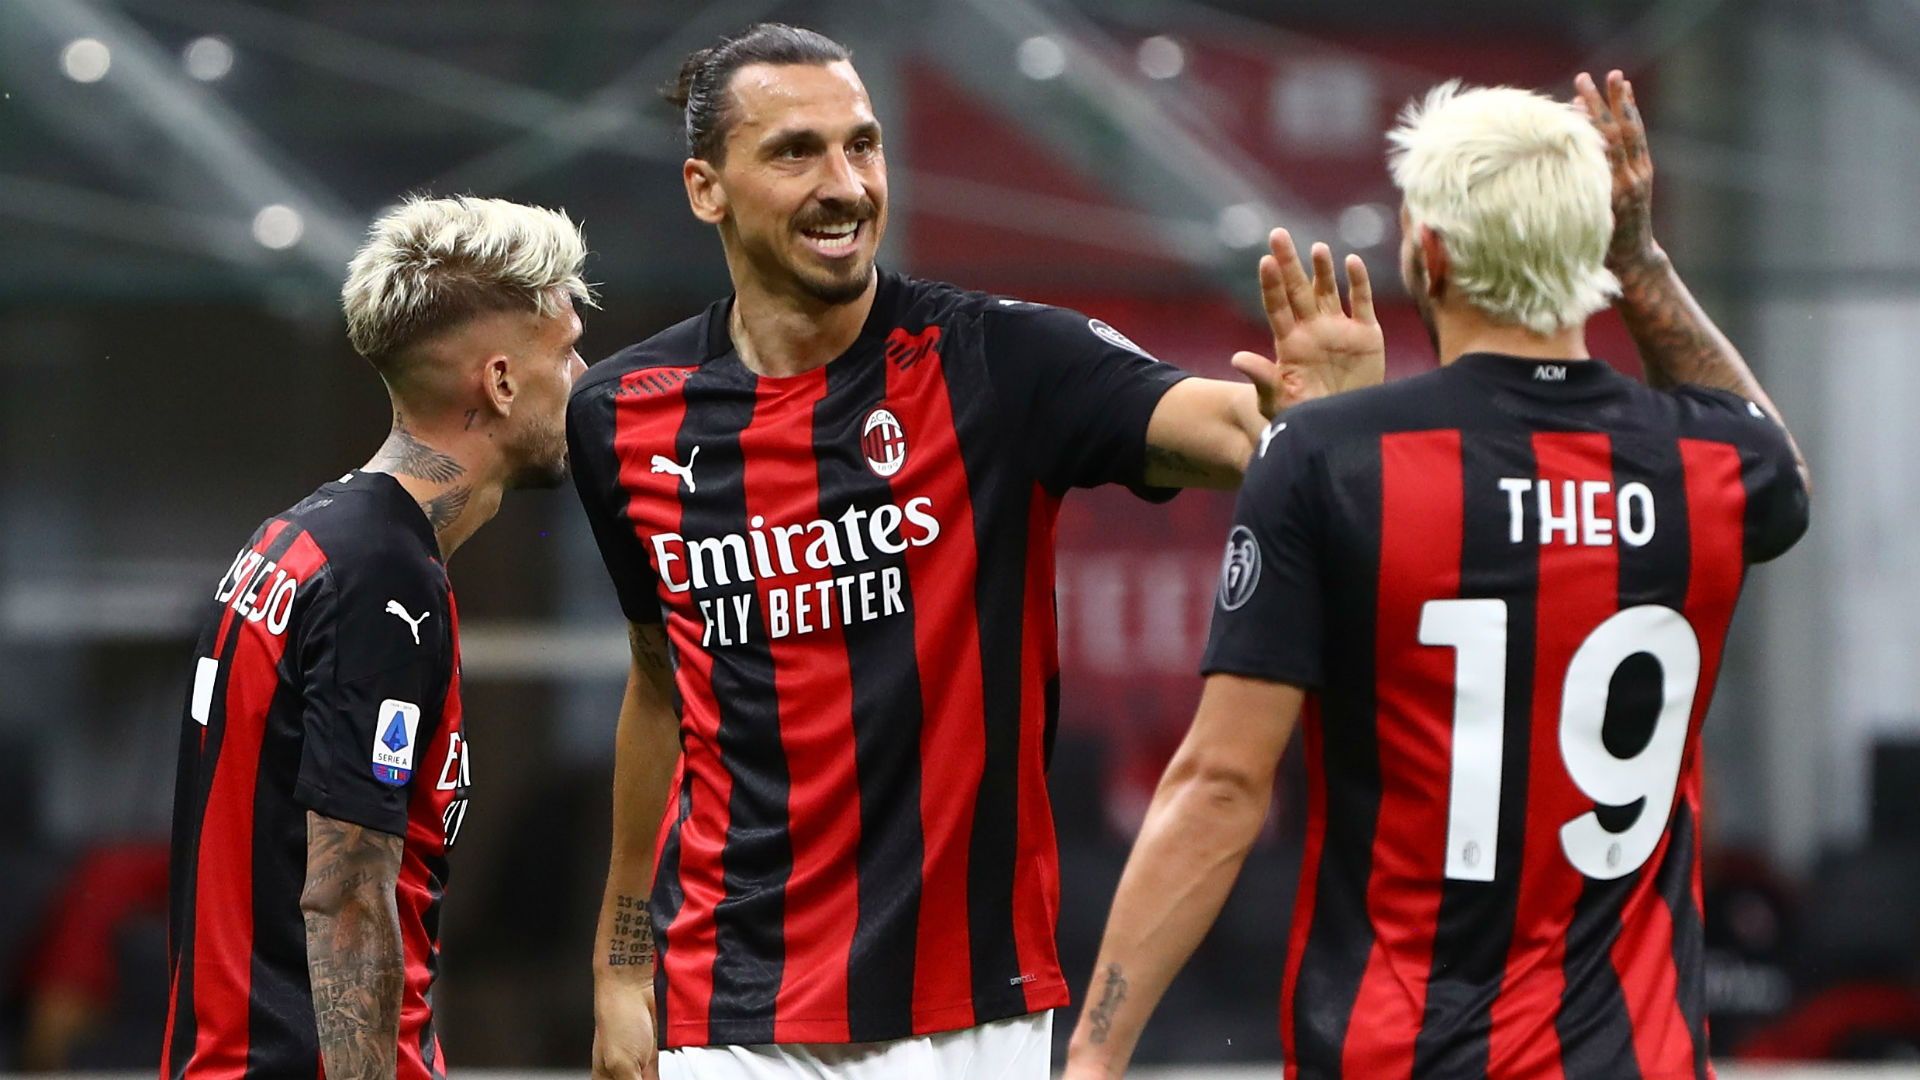 'I want to bring Milan back to where it belongs!' - Ibrahimovic set to sign new contract at San Siro